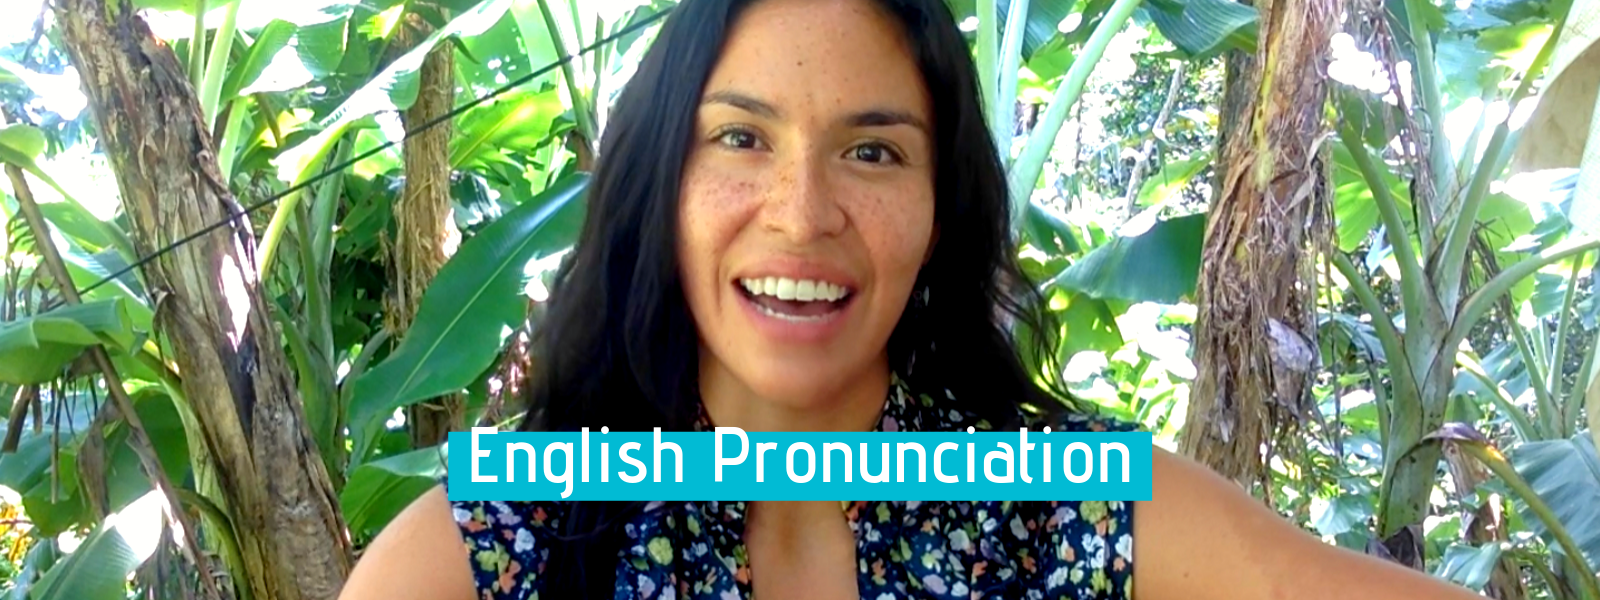 How to pronounce sounds in English - Pronunciation Talaera